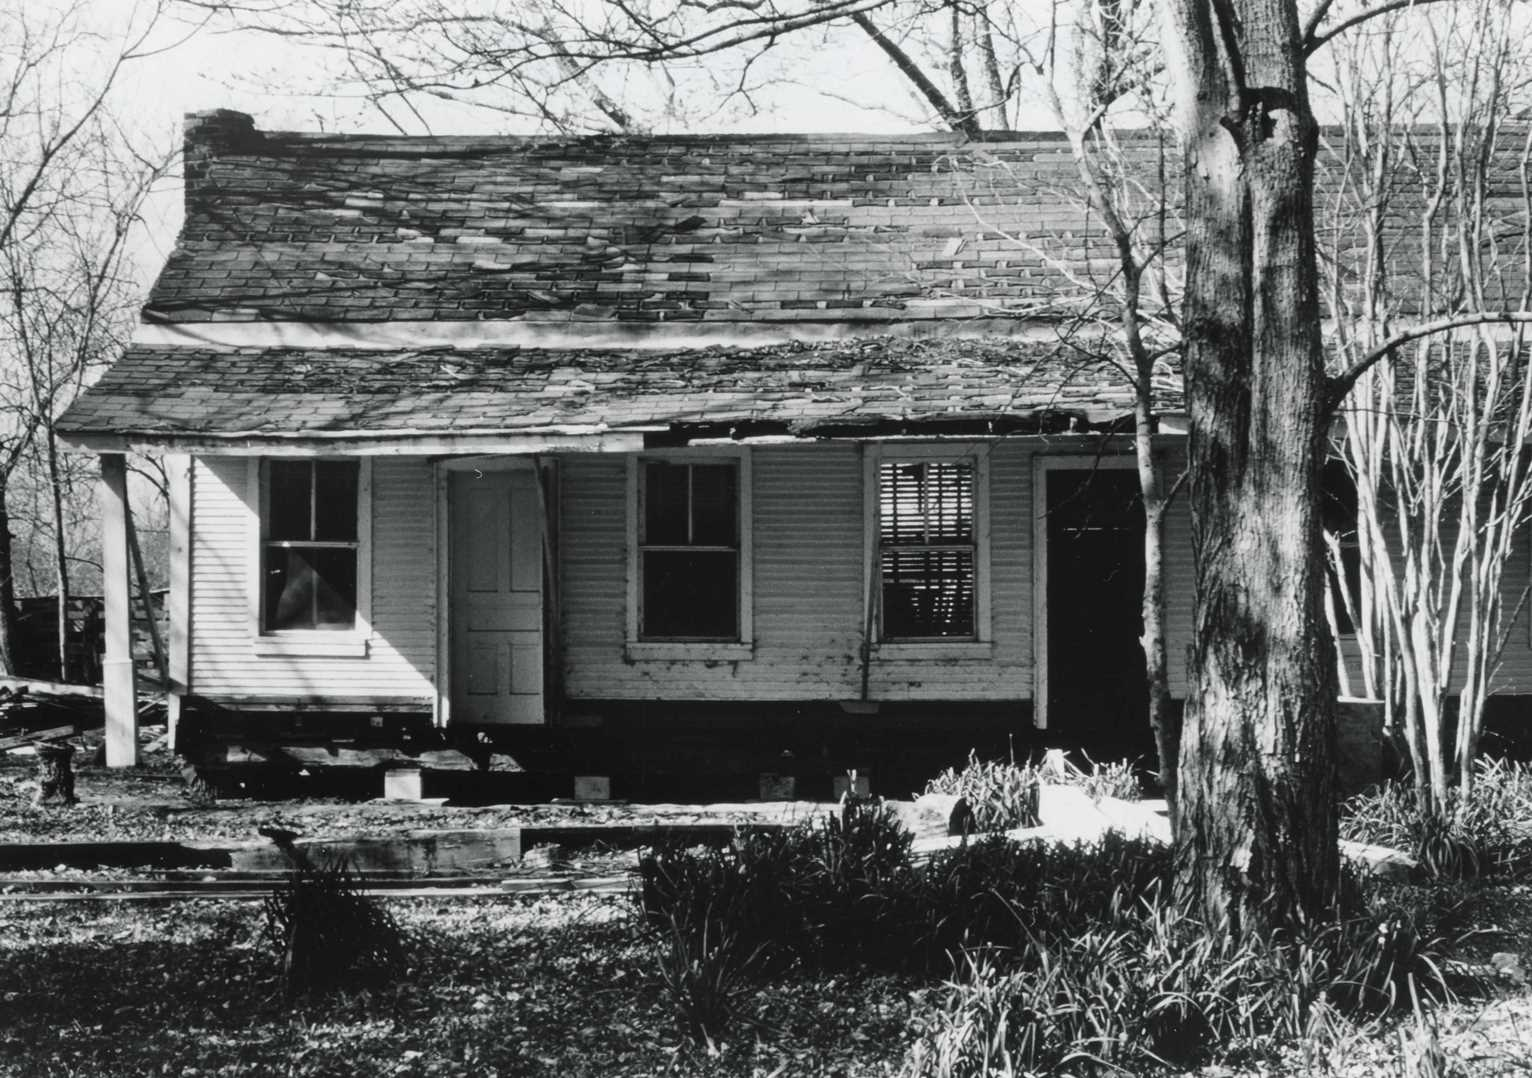 McCroskey-Stringfellow House/John McCroskey Cabin ca. 1975. (John McCroskey Cabin National Register of Historic Places Nomination Form, THC).